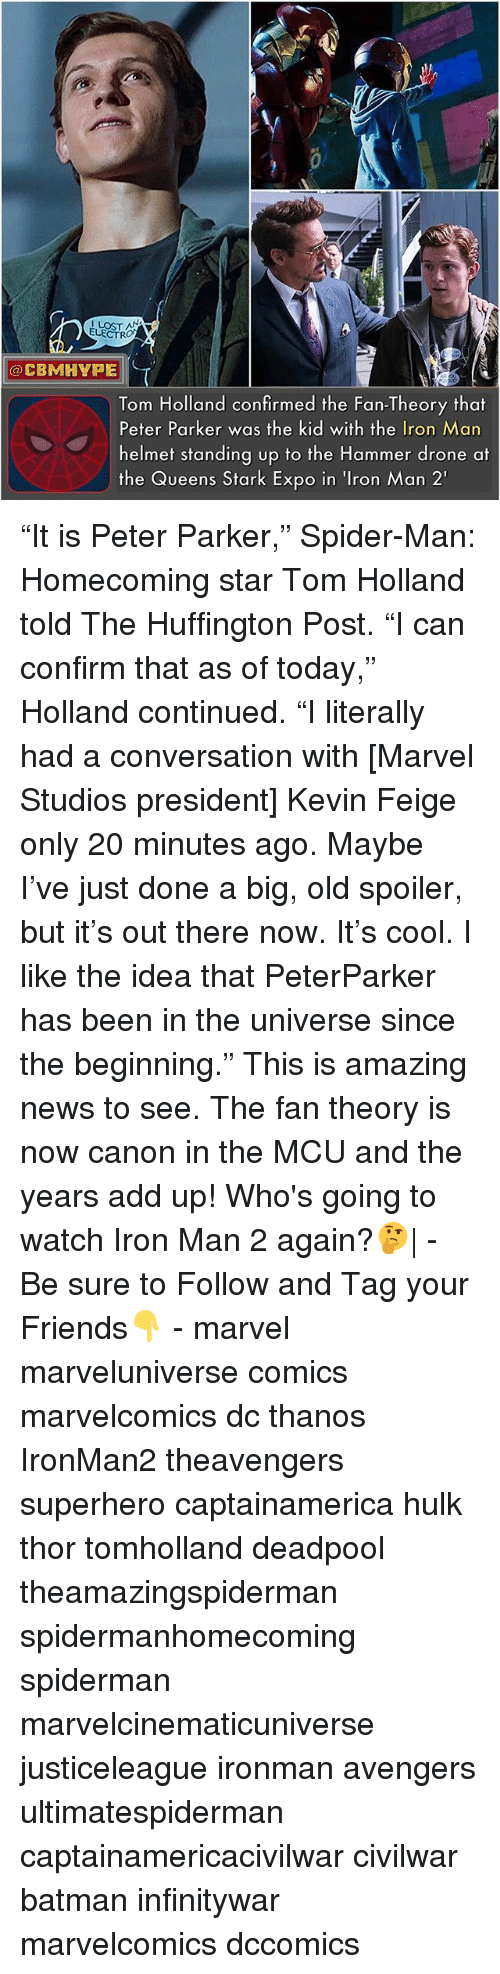 """Batman, Drone, and Friends: LOST A  ELECTRO  @CBMHYPE  Tom Holland confirmed the Fan-Theory that  Peter Parker was the kid with the Iron Man  helmet standing up to the Hammer drone at  the Queens Stark Expo in 'Iron Man 2' """"It is Peter Parker,"""" Spider-Man: Homecoming star Tom Holland told The Huffington Post. """"I can confirm that as of today,"""" Holland continued. """"I literally had a conversation with [Marvel Studios president] Kevin Feige only 20 minutes ago. Maybe I've just done a big, old spoiler, but it's out there now. It's cool. I like the idea that PeterParker has been in the universe since the beginning."""" This is amazing news to see. The fan theory is now canon in the MCU and the years add up! Who's going to watch Iron Man 2 again?🤔